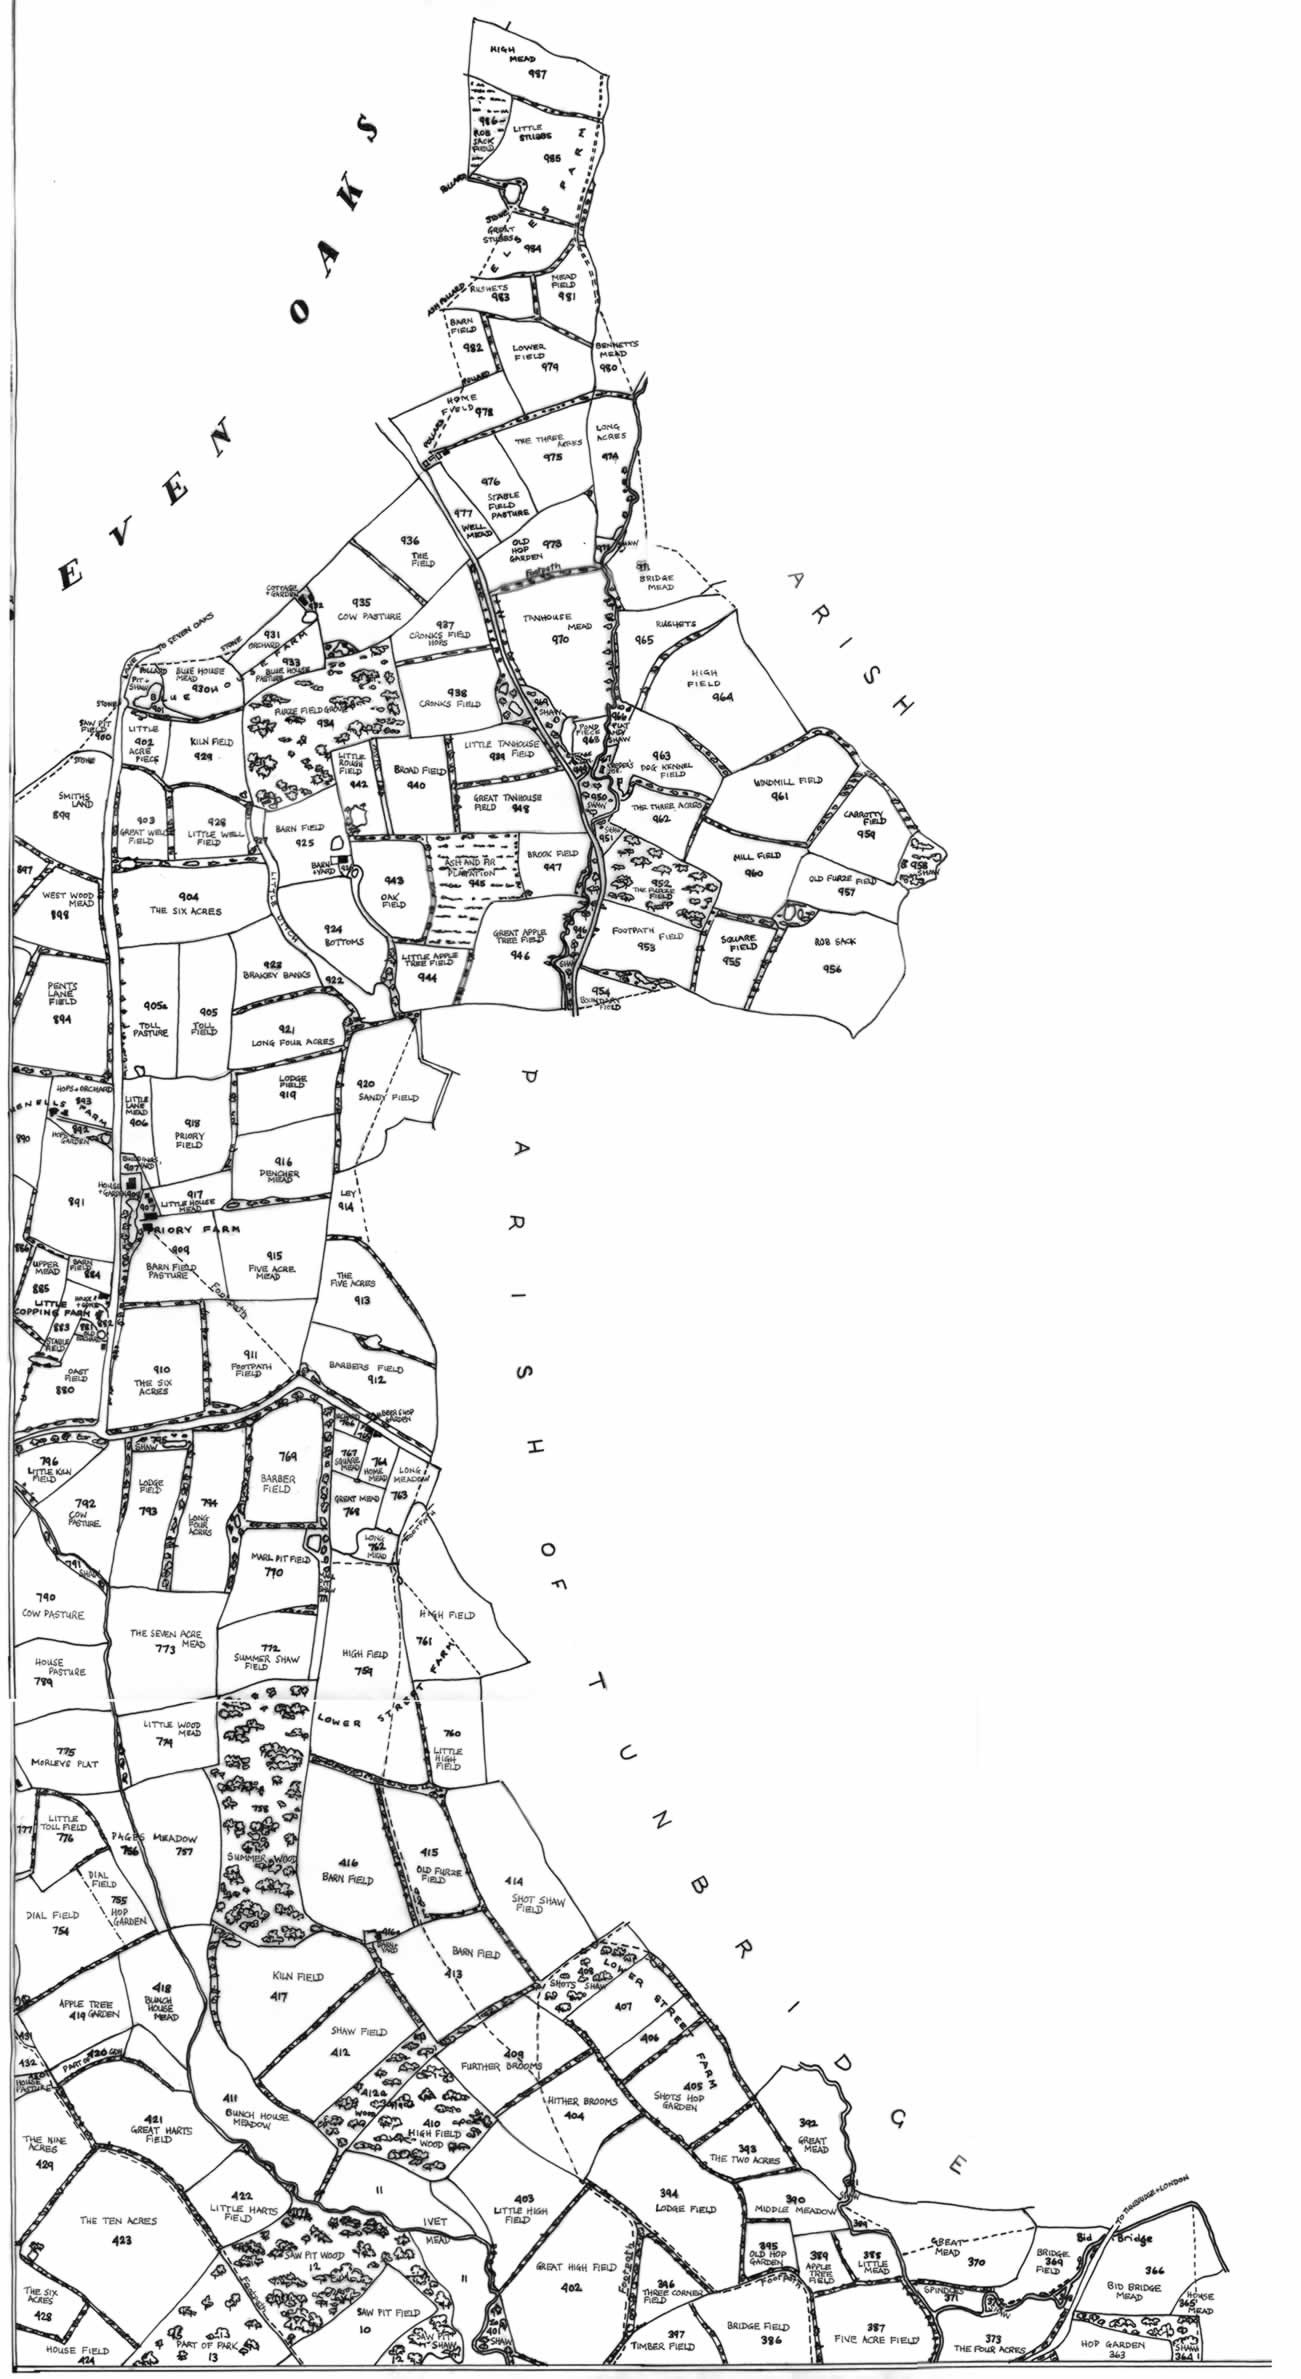 Tithe map. 1841, north-east quarter